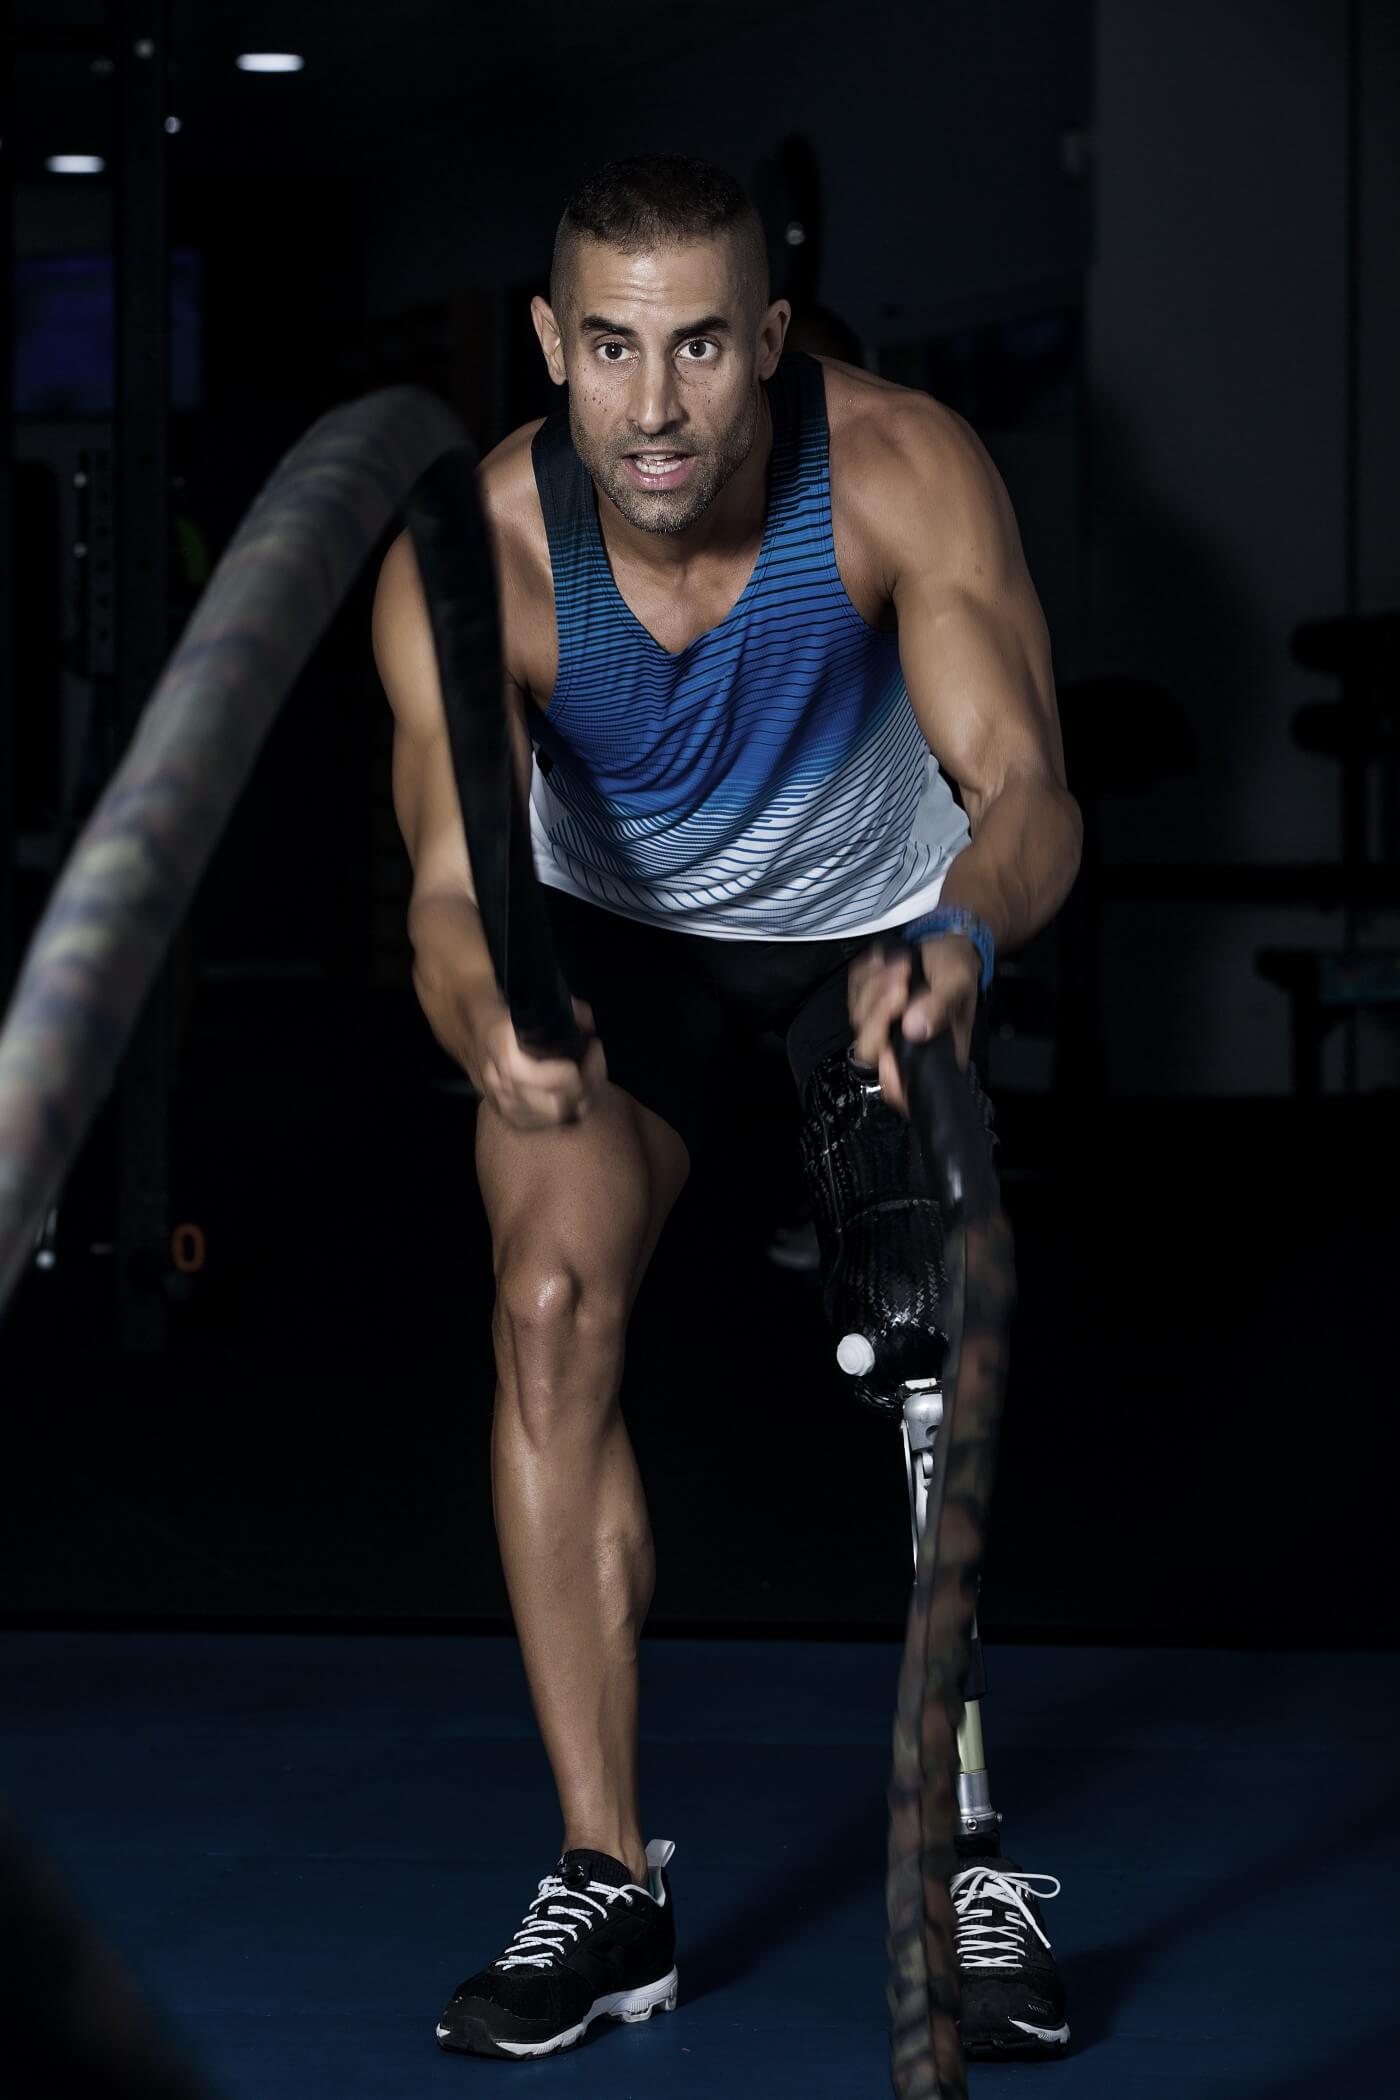 Man with prosthetic leg exercising in Gym